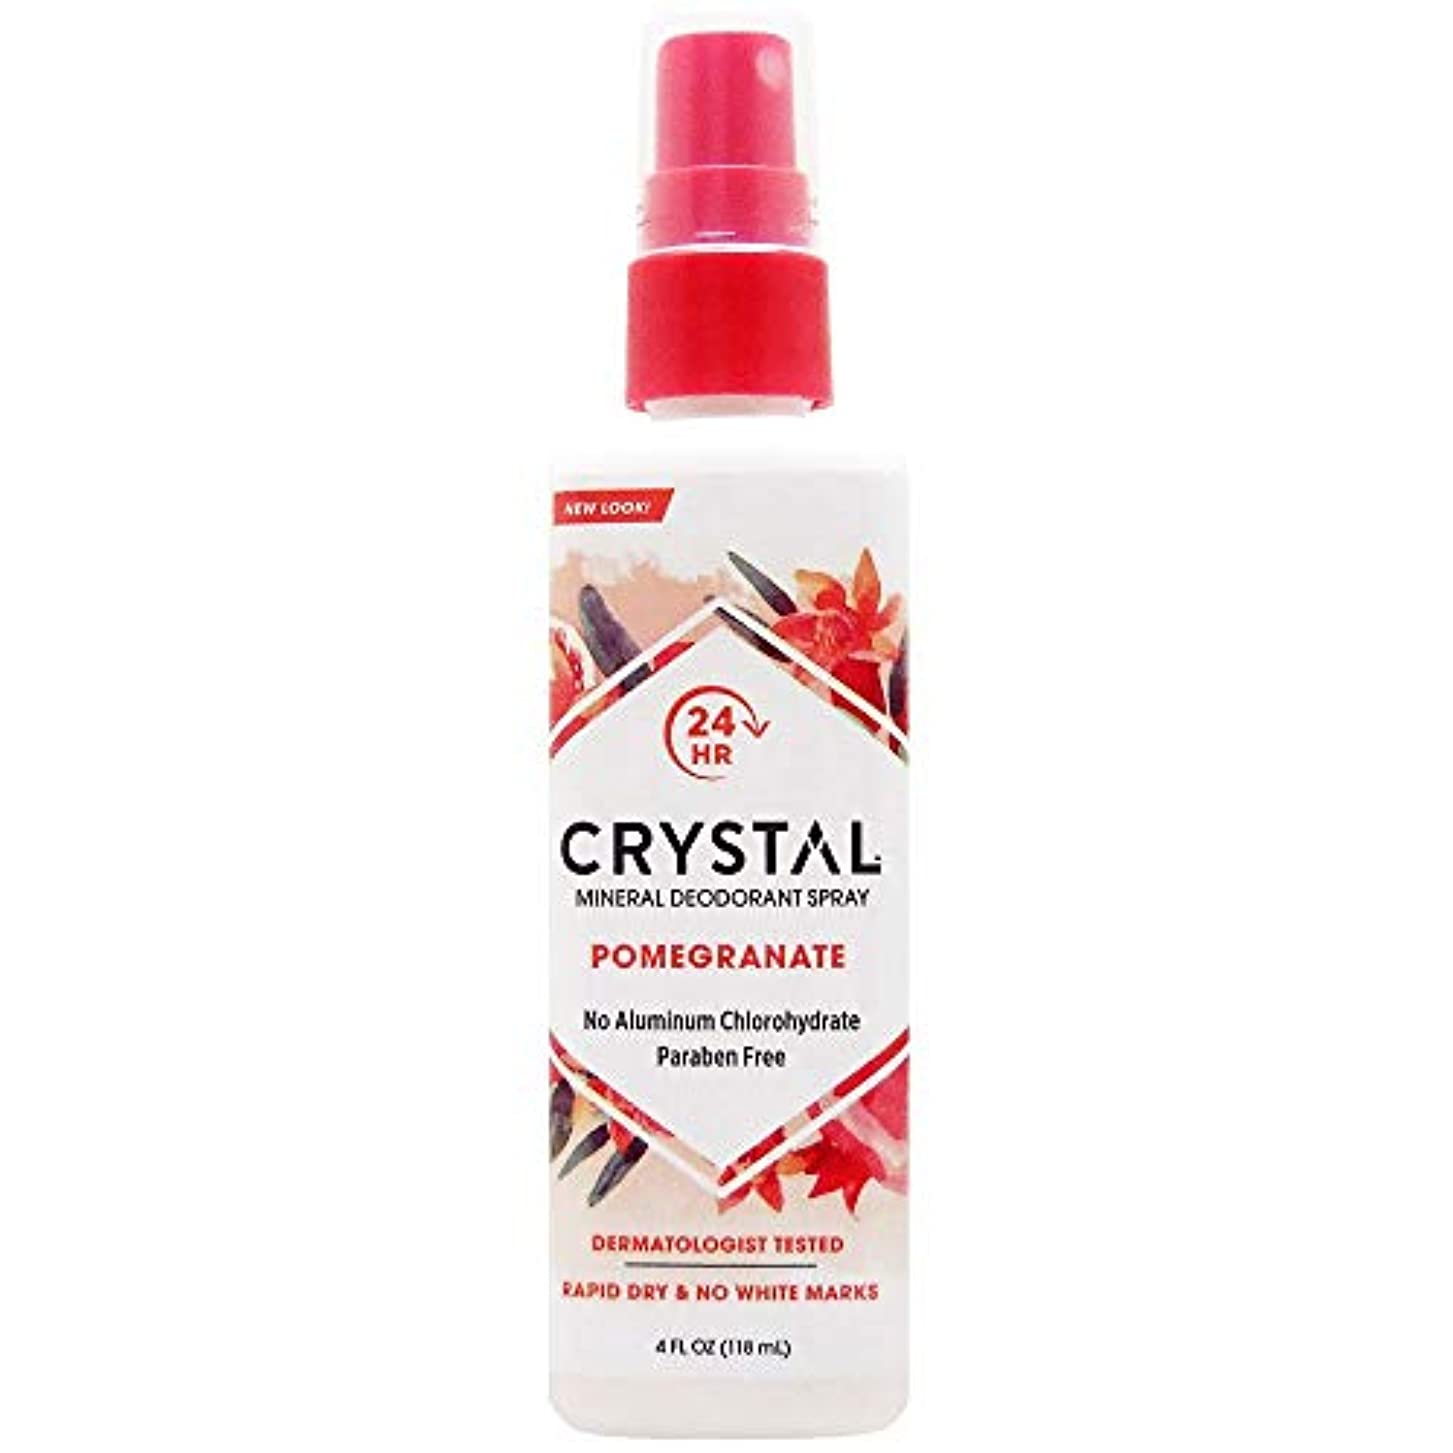 Crystal Essence 486522 Crystal Essence Mineral Deodorant Body Spray Pomegranate - 4 fl oz